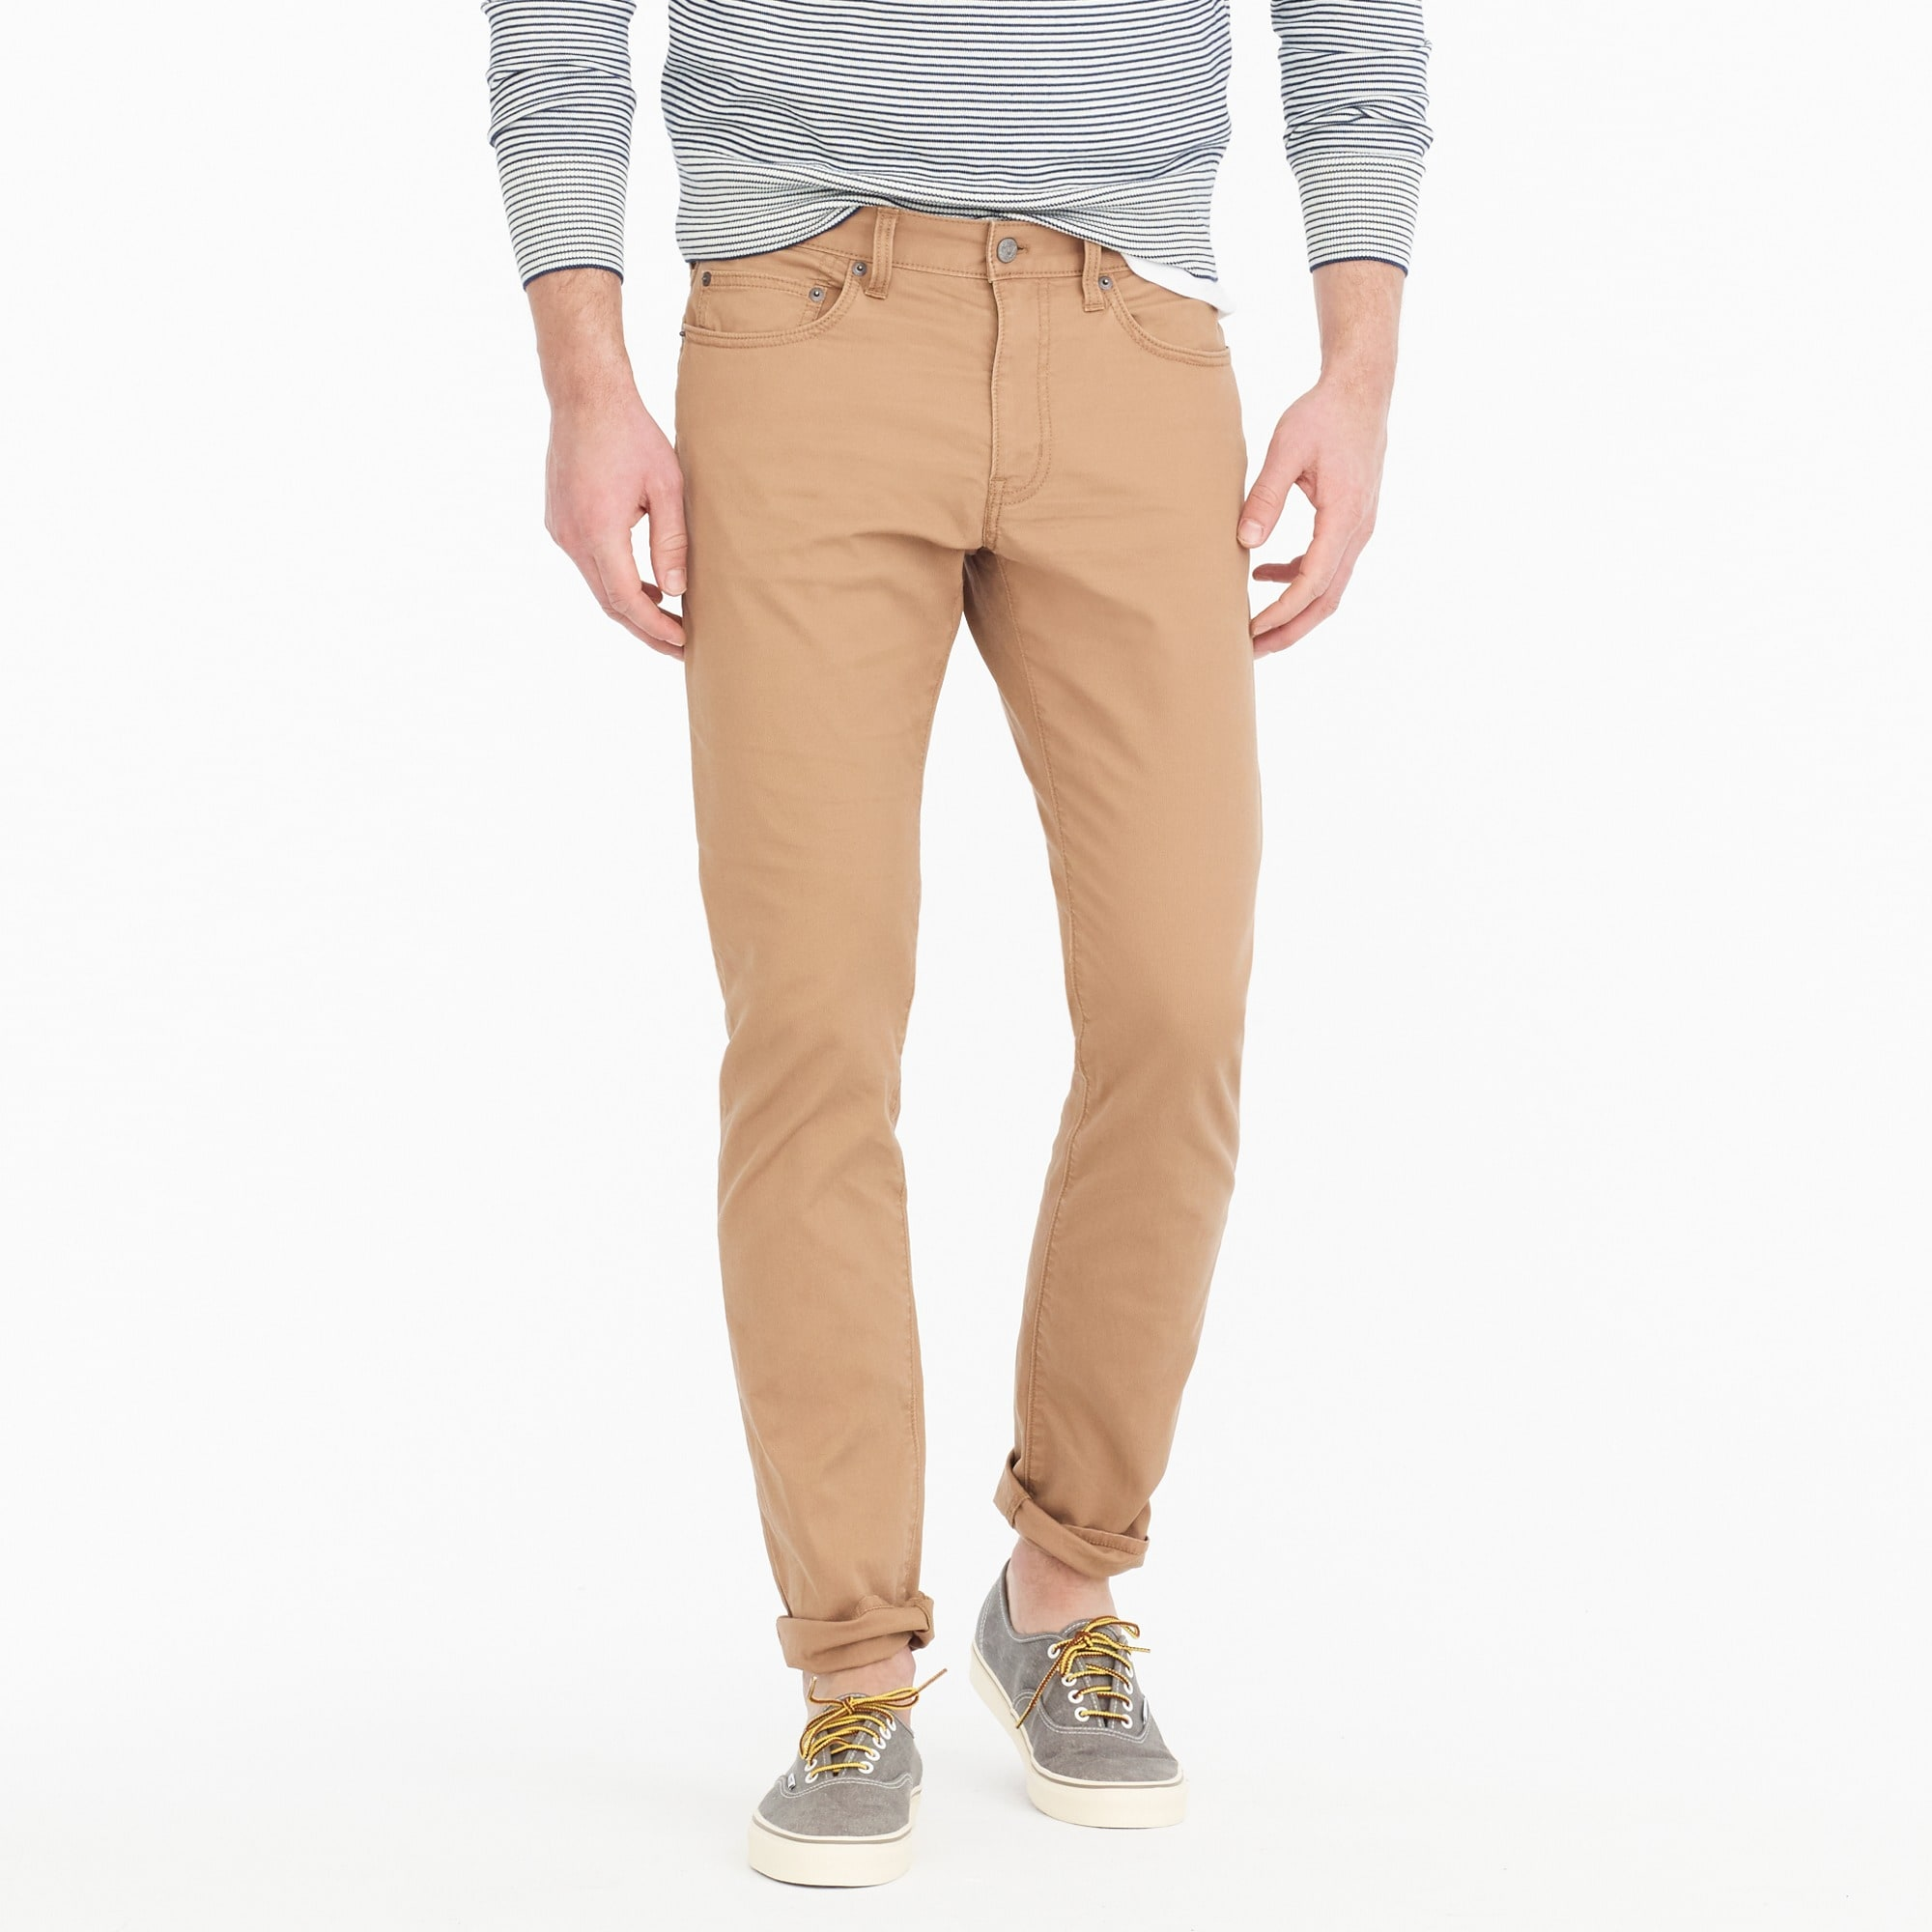 Image 1 for 484 Slim-fit pant in lightweight Bedford cord